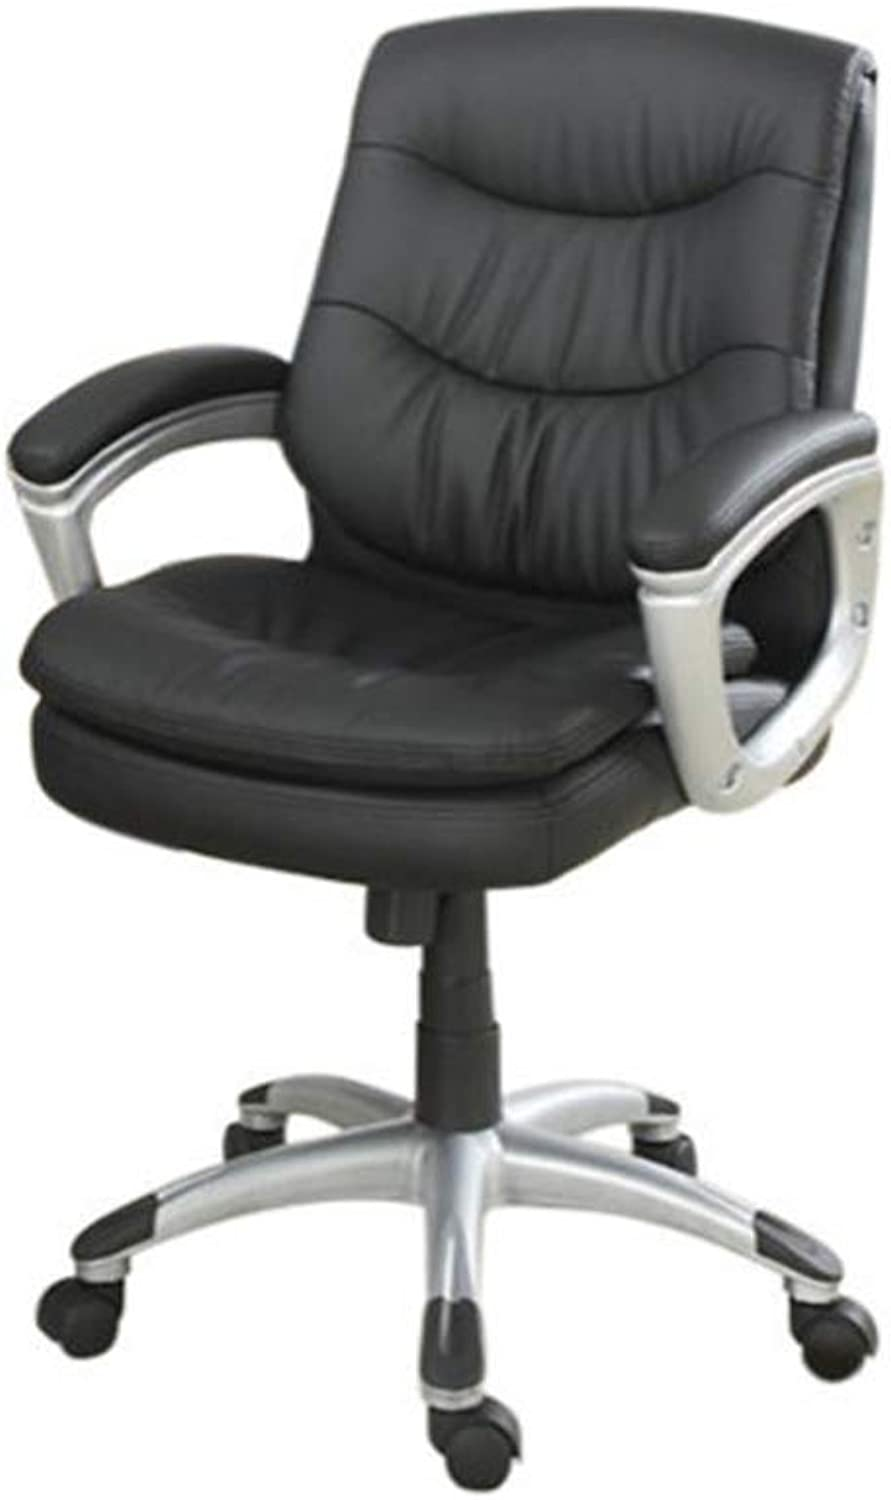 Benzara Aluminium Base Office Chair with Leather Seat, Black